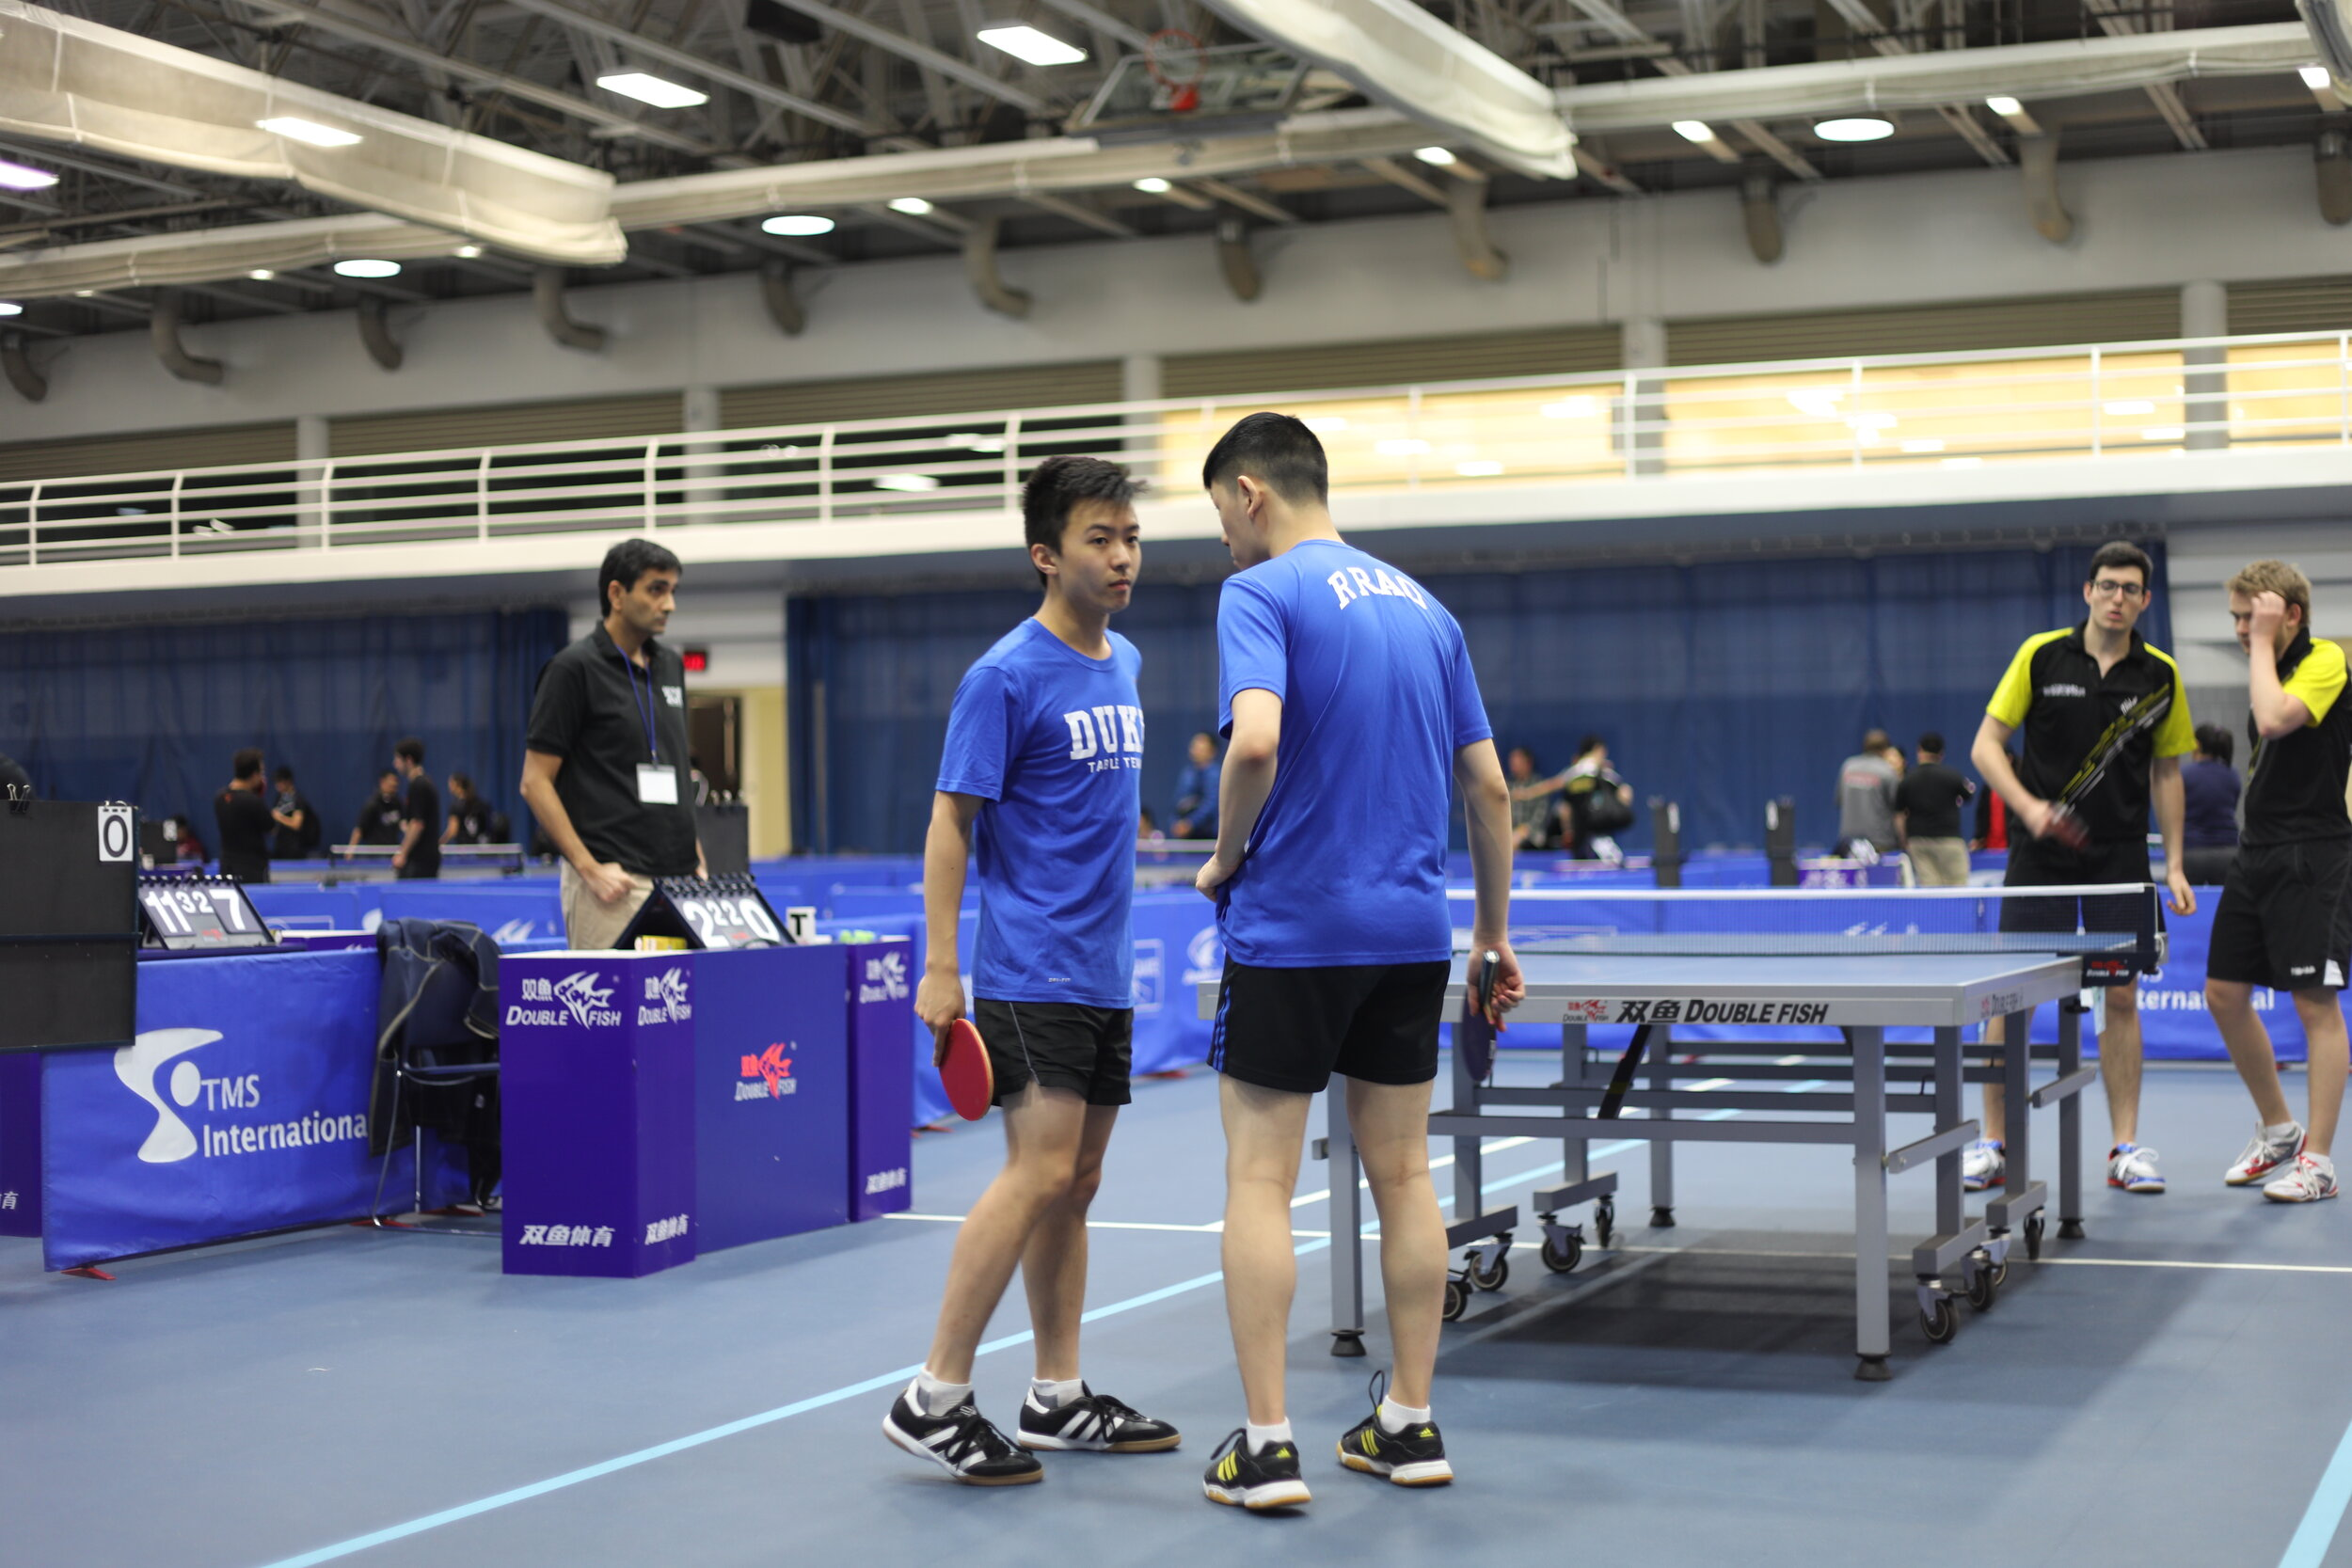 Exciting Future For Southland Table Tennis Prodigy Southlandsport